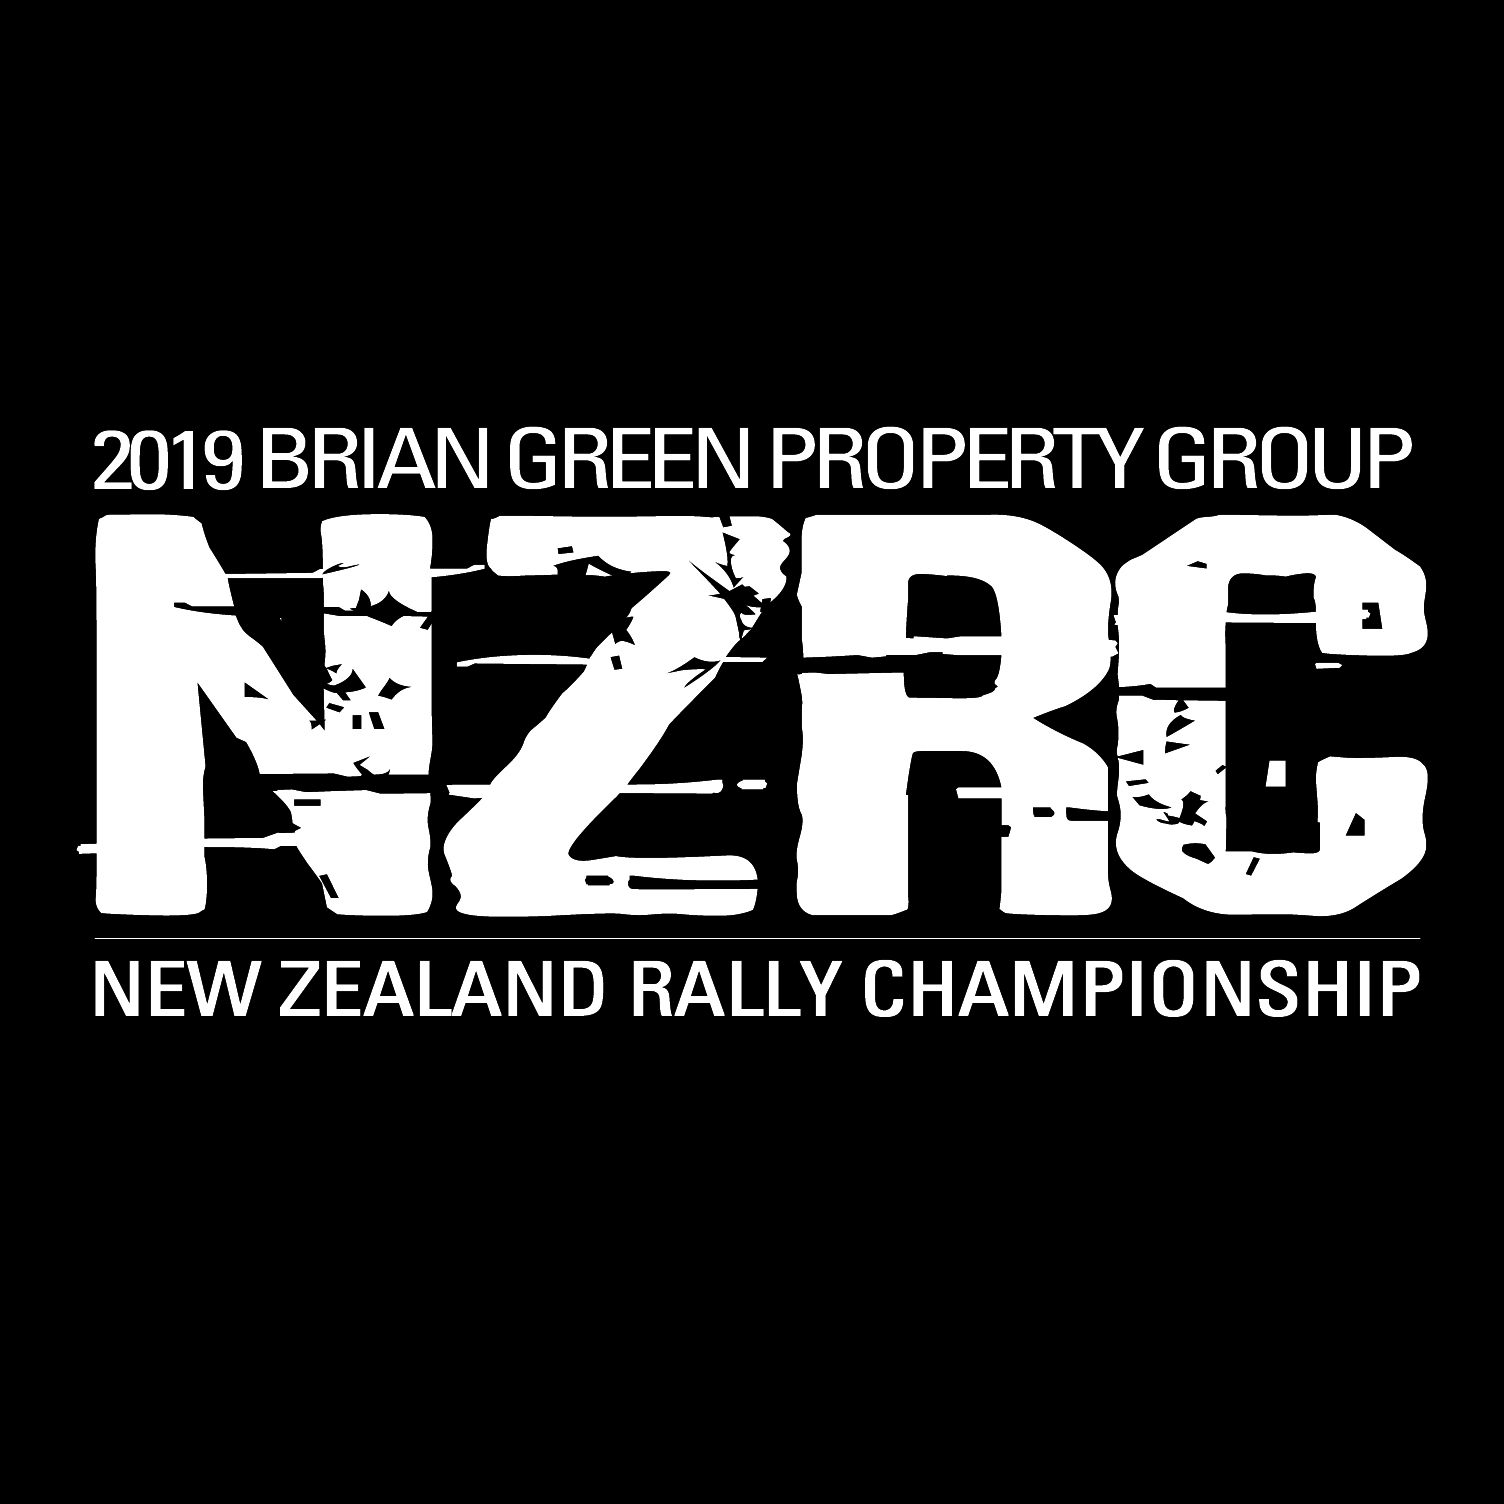 More 2018 champions crowned | :: Brian Green Property Group New Zealand Rally Championship ::